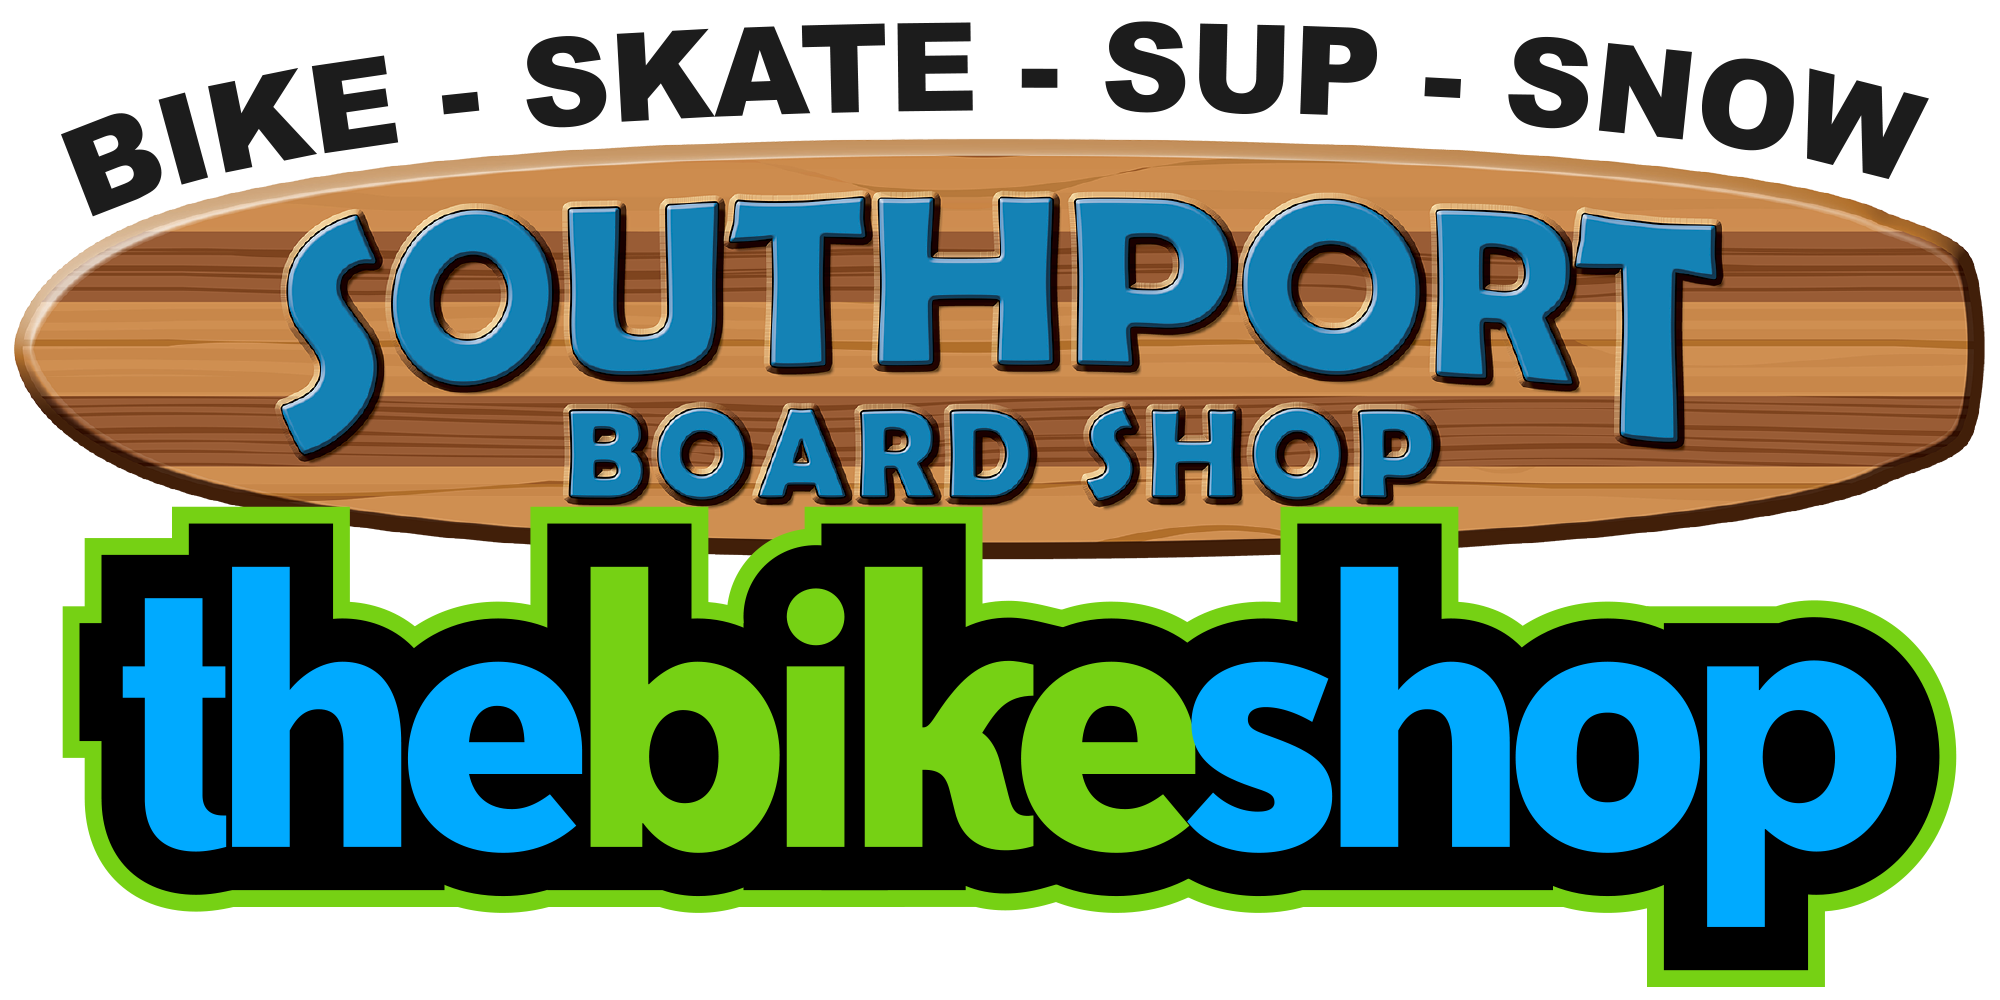 Southport Bikes & Boards Leading Bike Boards & Snow Dealer